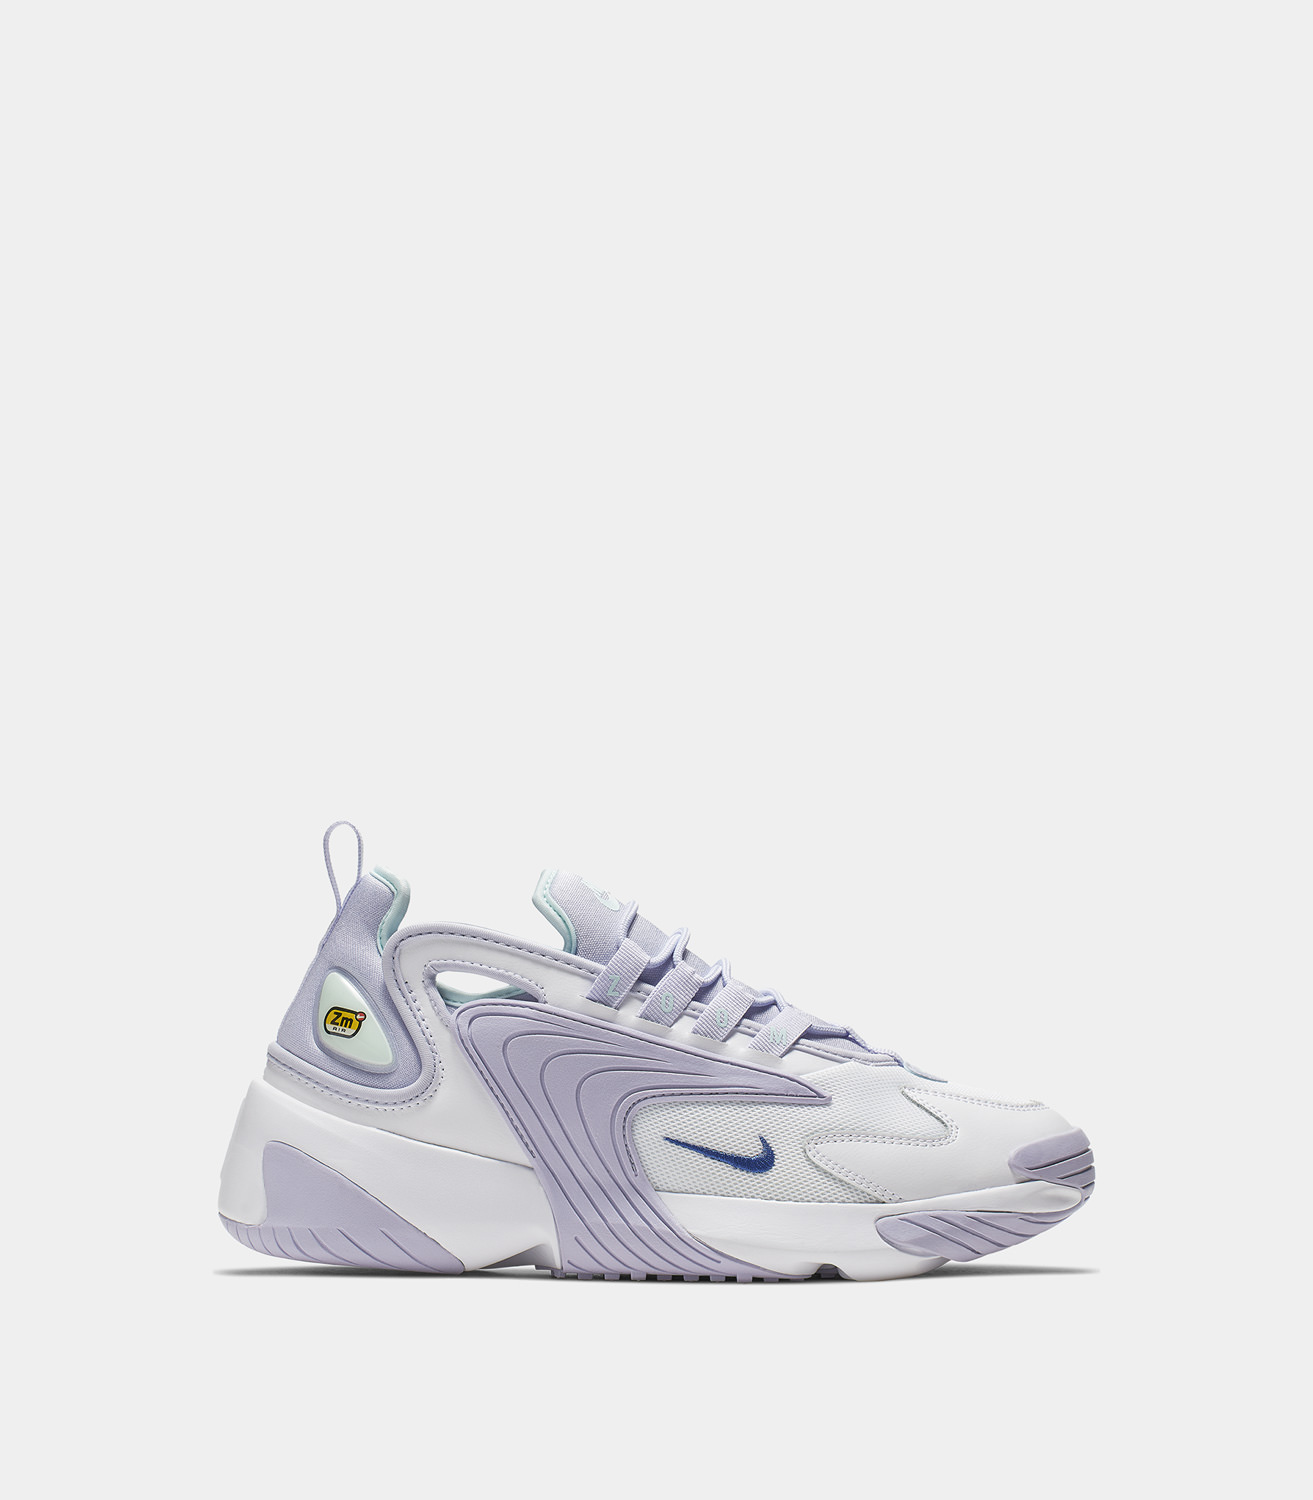 3aaf41d5e NIKE ZOOM 2K SNEAKERS COLOR WHITE LILAC